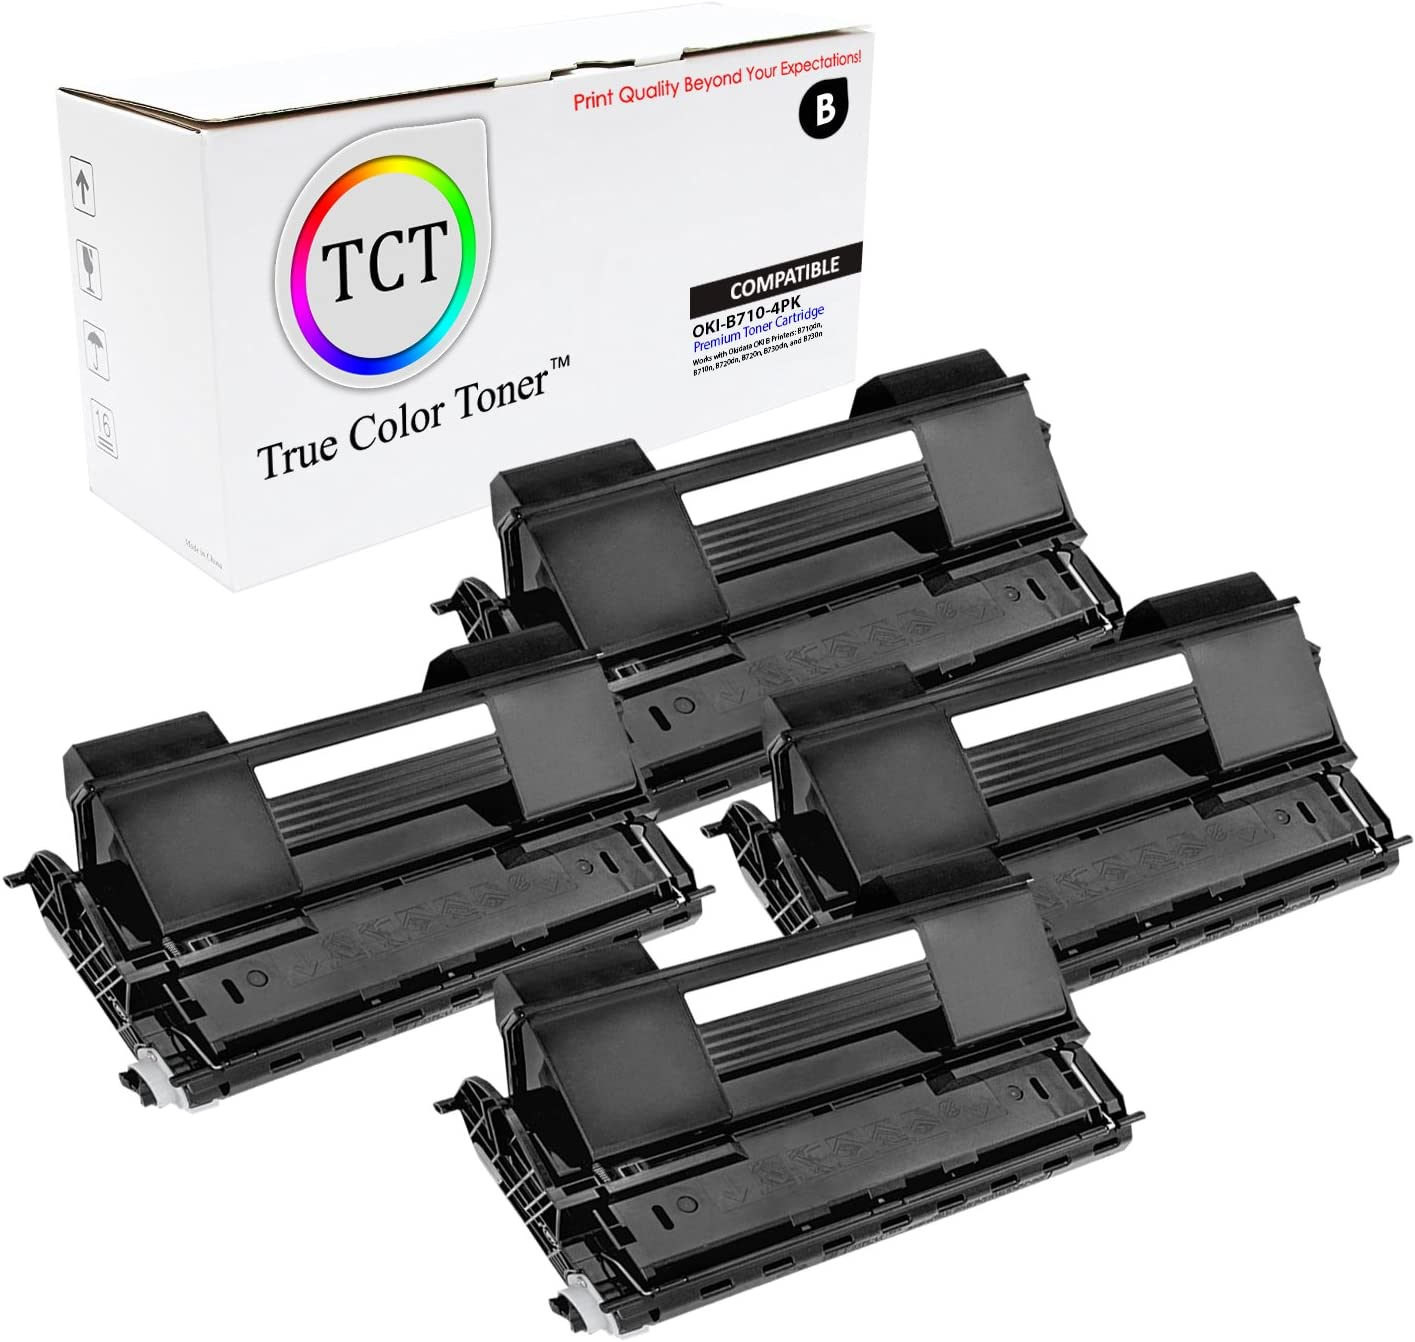 4 Pack 15,000 Pages TCT Premium Compatible Toner Cartridge Replacement for Okidata B710 52123601 Black Works with Okidata B720 B730 Printers